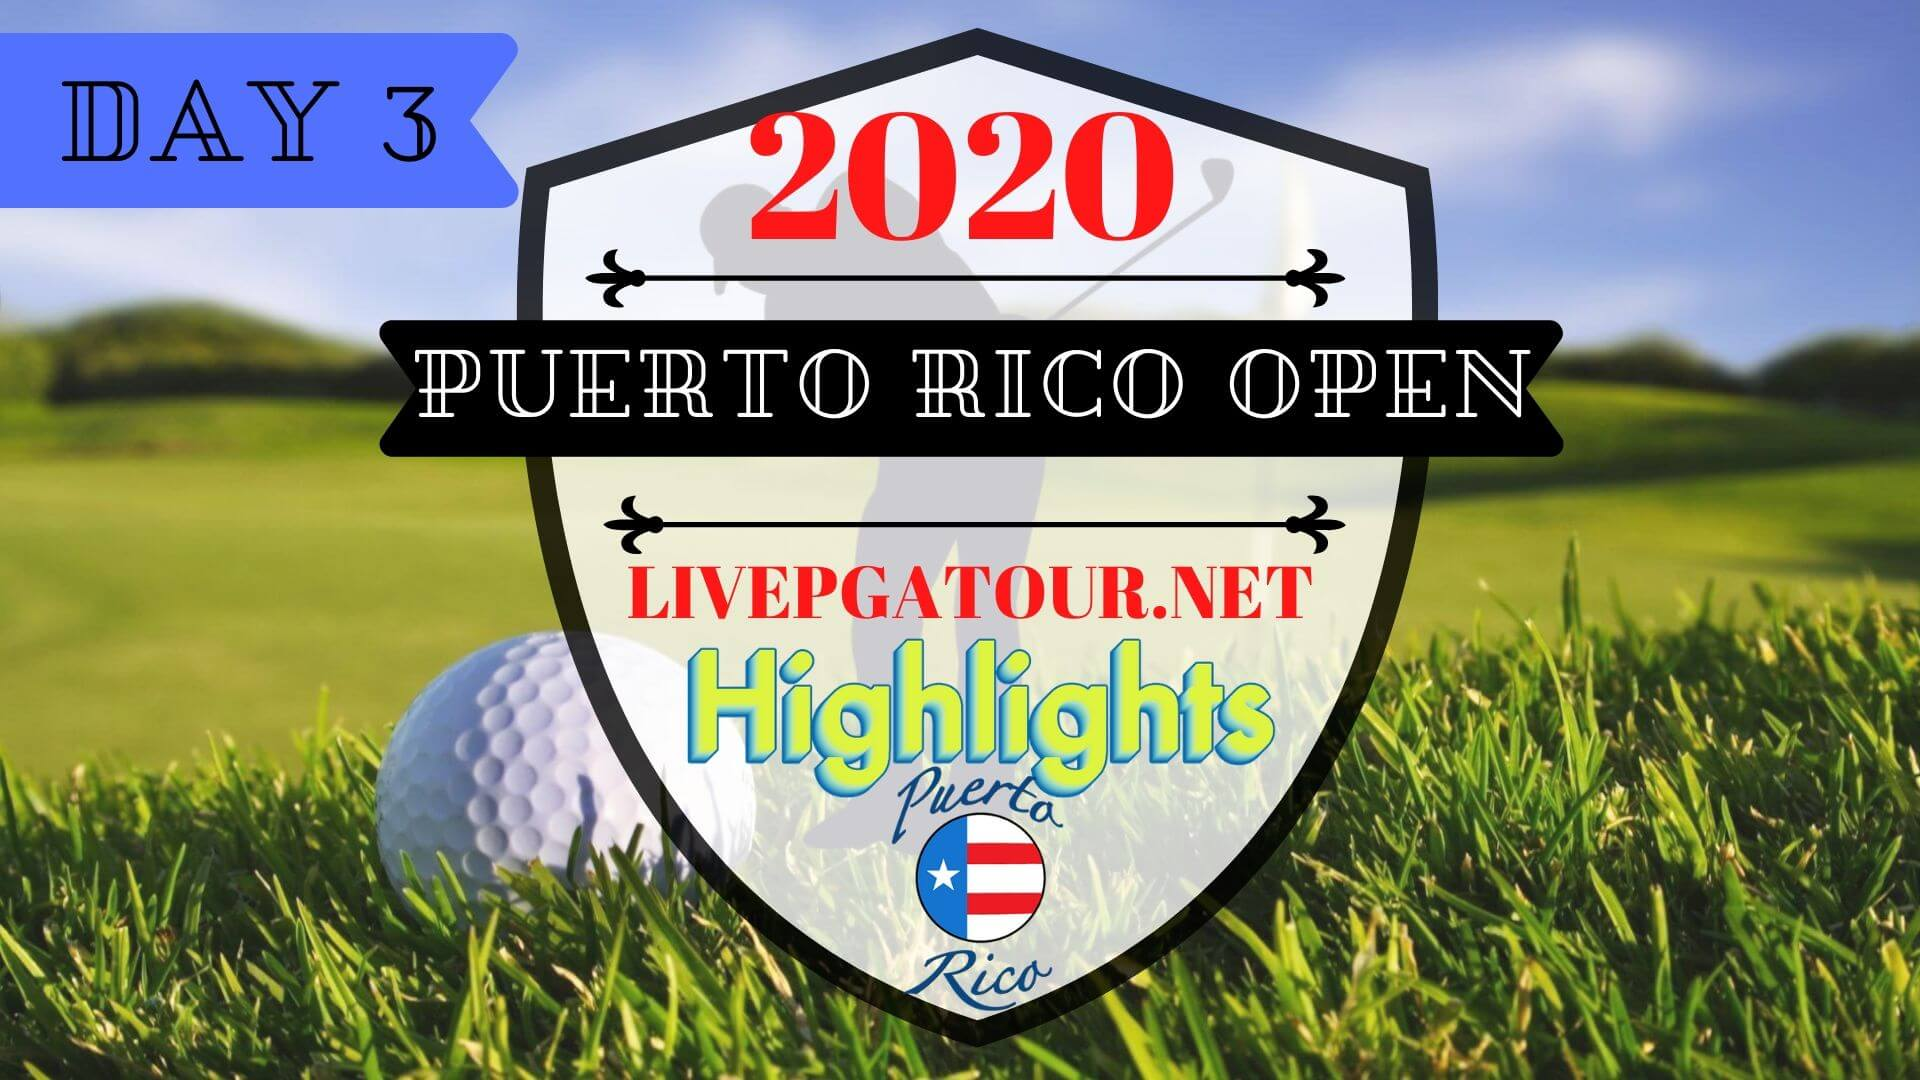 Puerto Rico Open Highlights 2020 Day 3